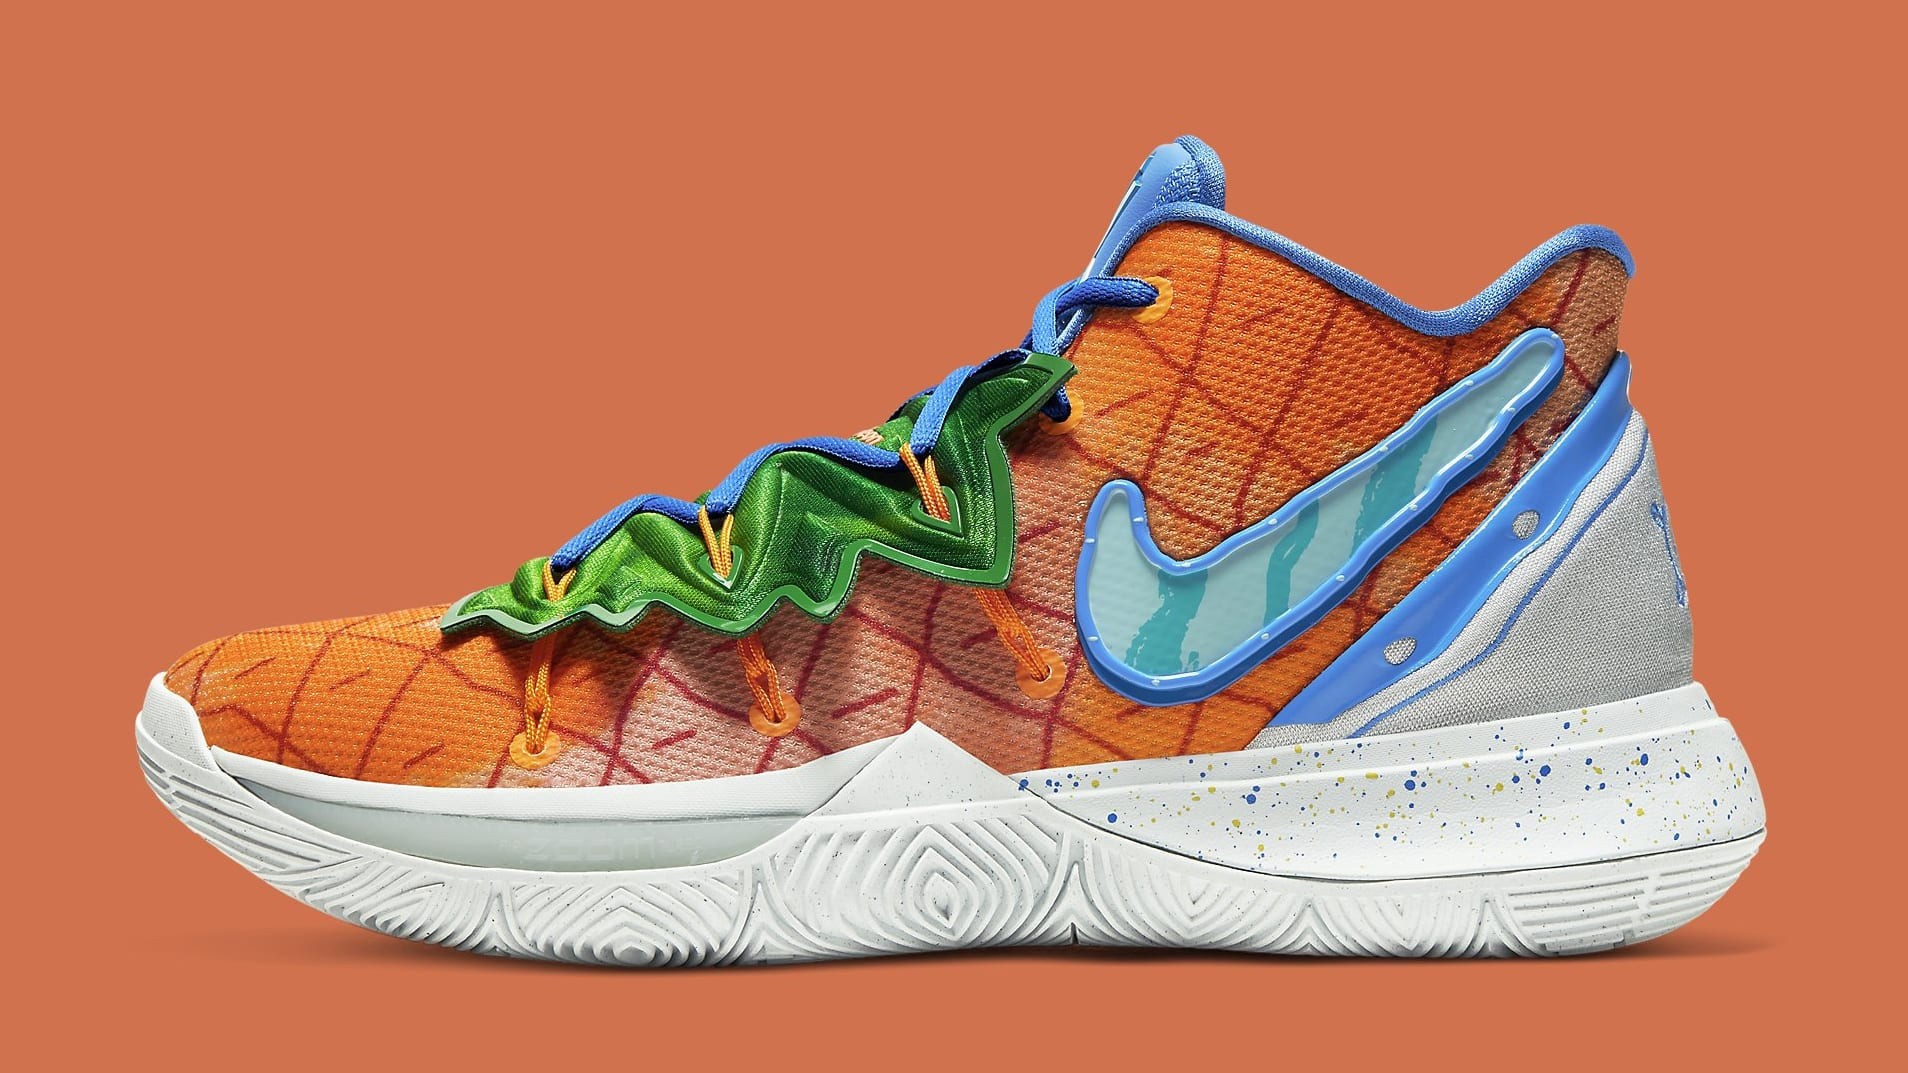 The Next SpongeBob x Kyrie 5s Look Like the Pineapple Under the Sea